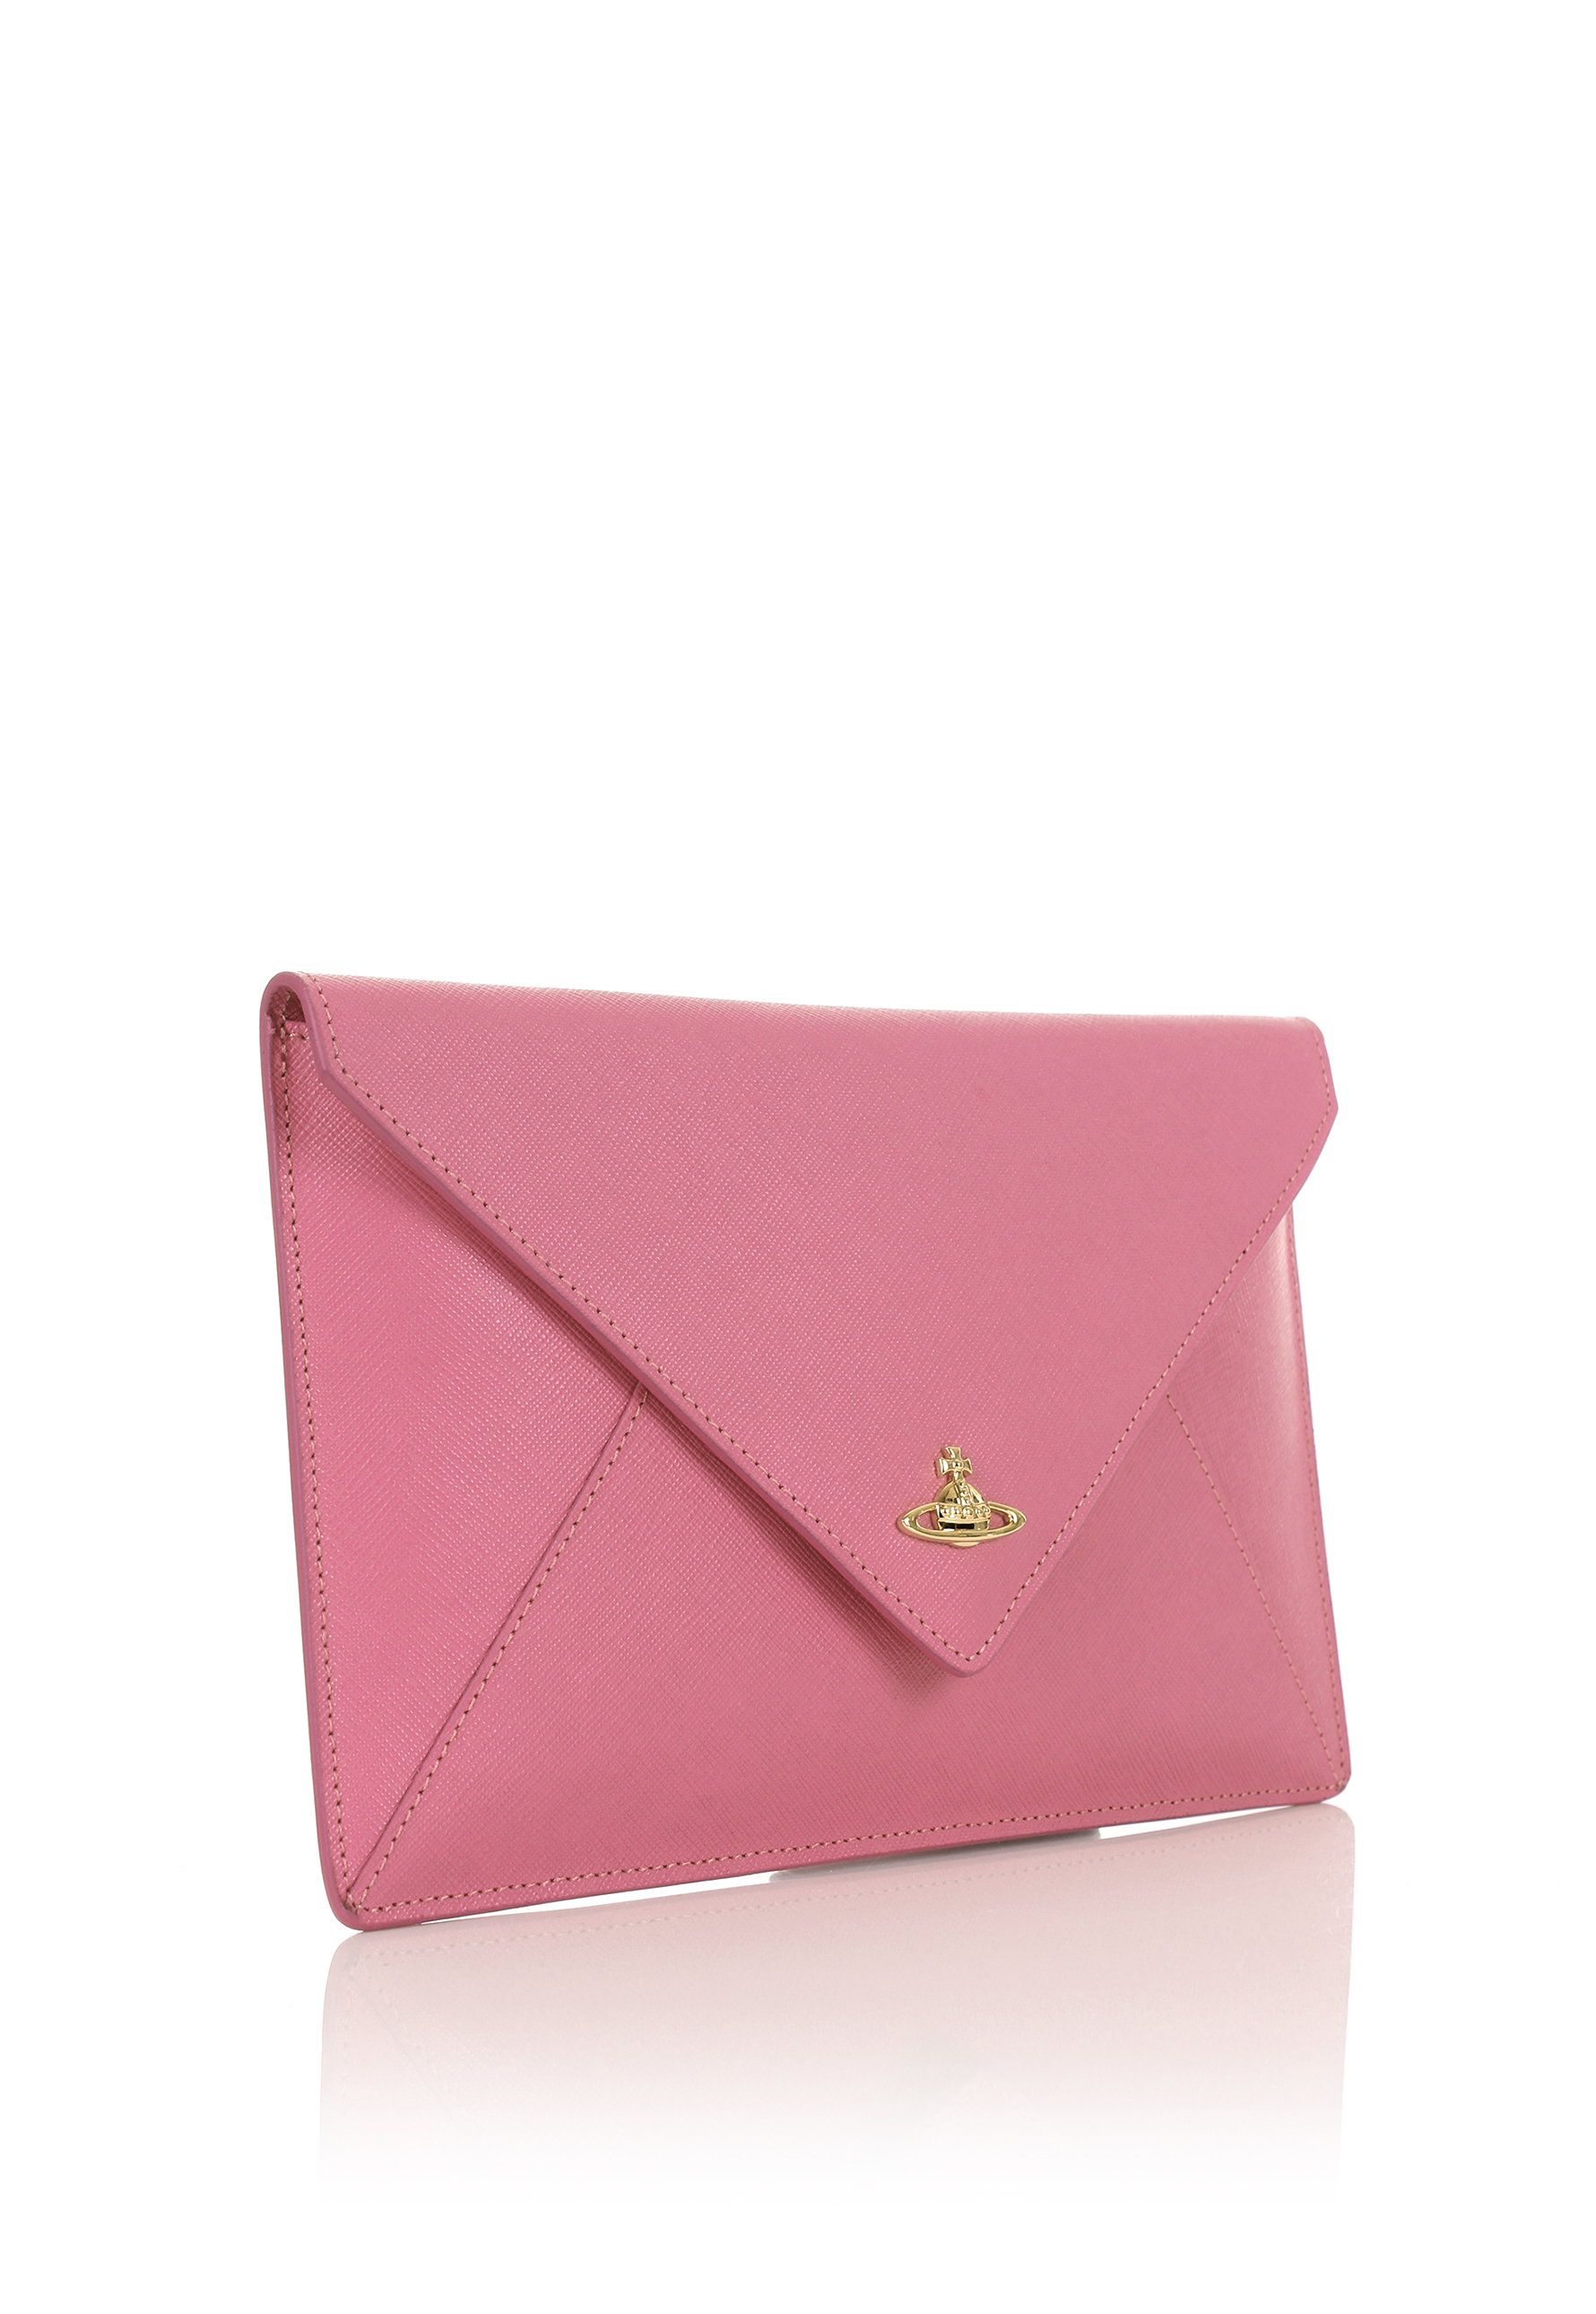 cf0e71f6c49eb Vivienne Westwood Pink Saffiano Leather Clutch in Pink - Lyst